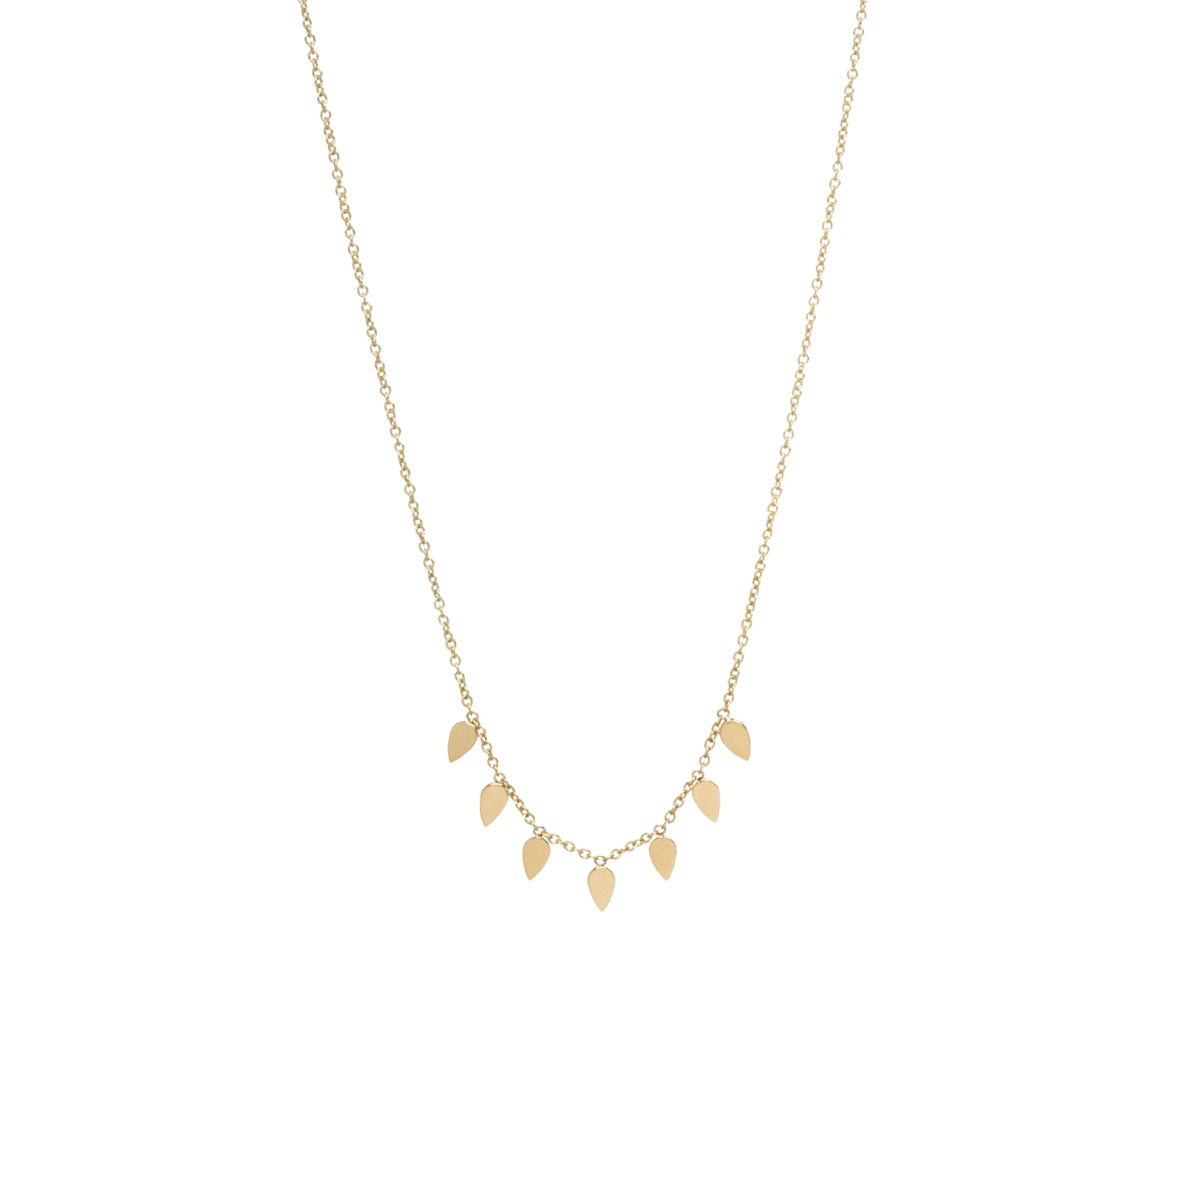 Zoë Chicco 14kt Yellow Gold 7 Itty Bitty Tear Necklace